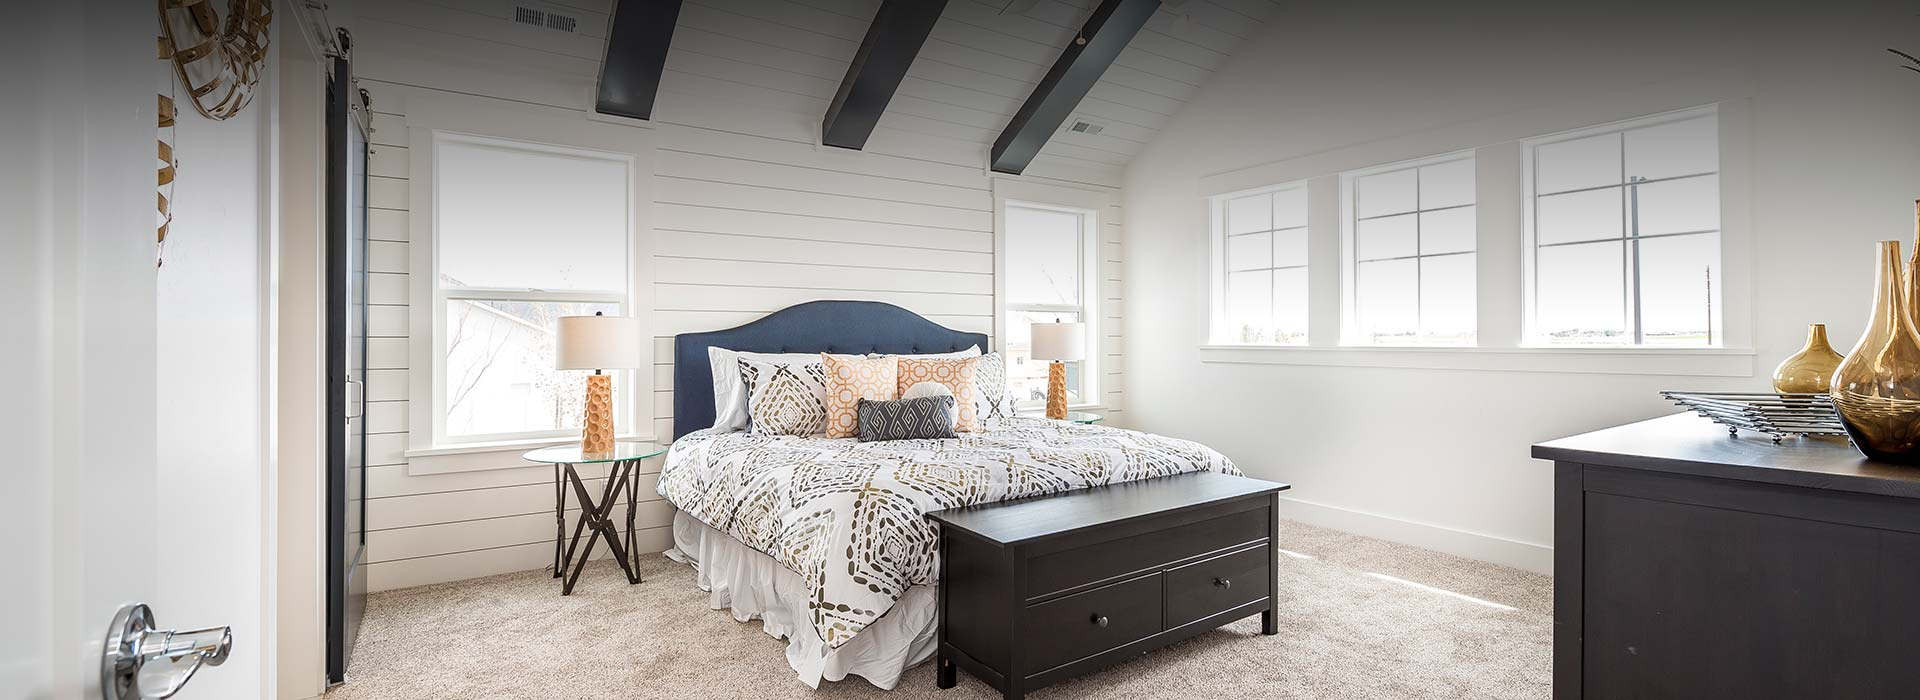 Monterey Master Bedroom